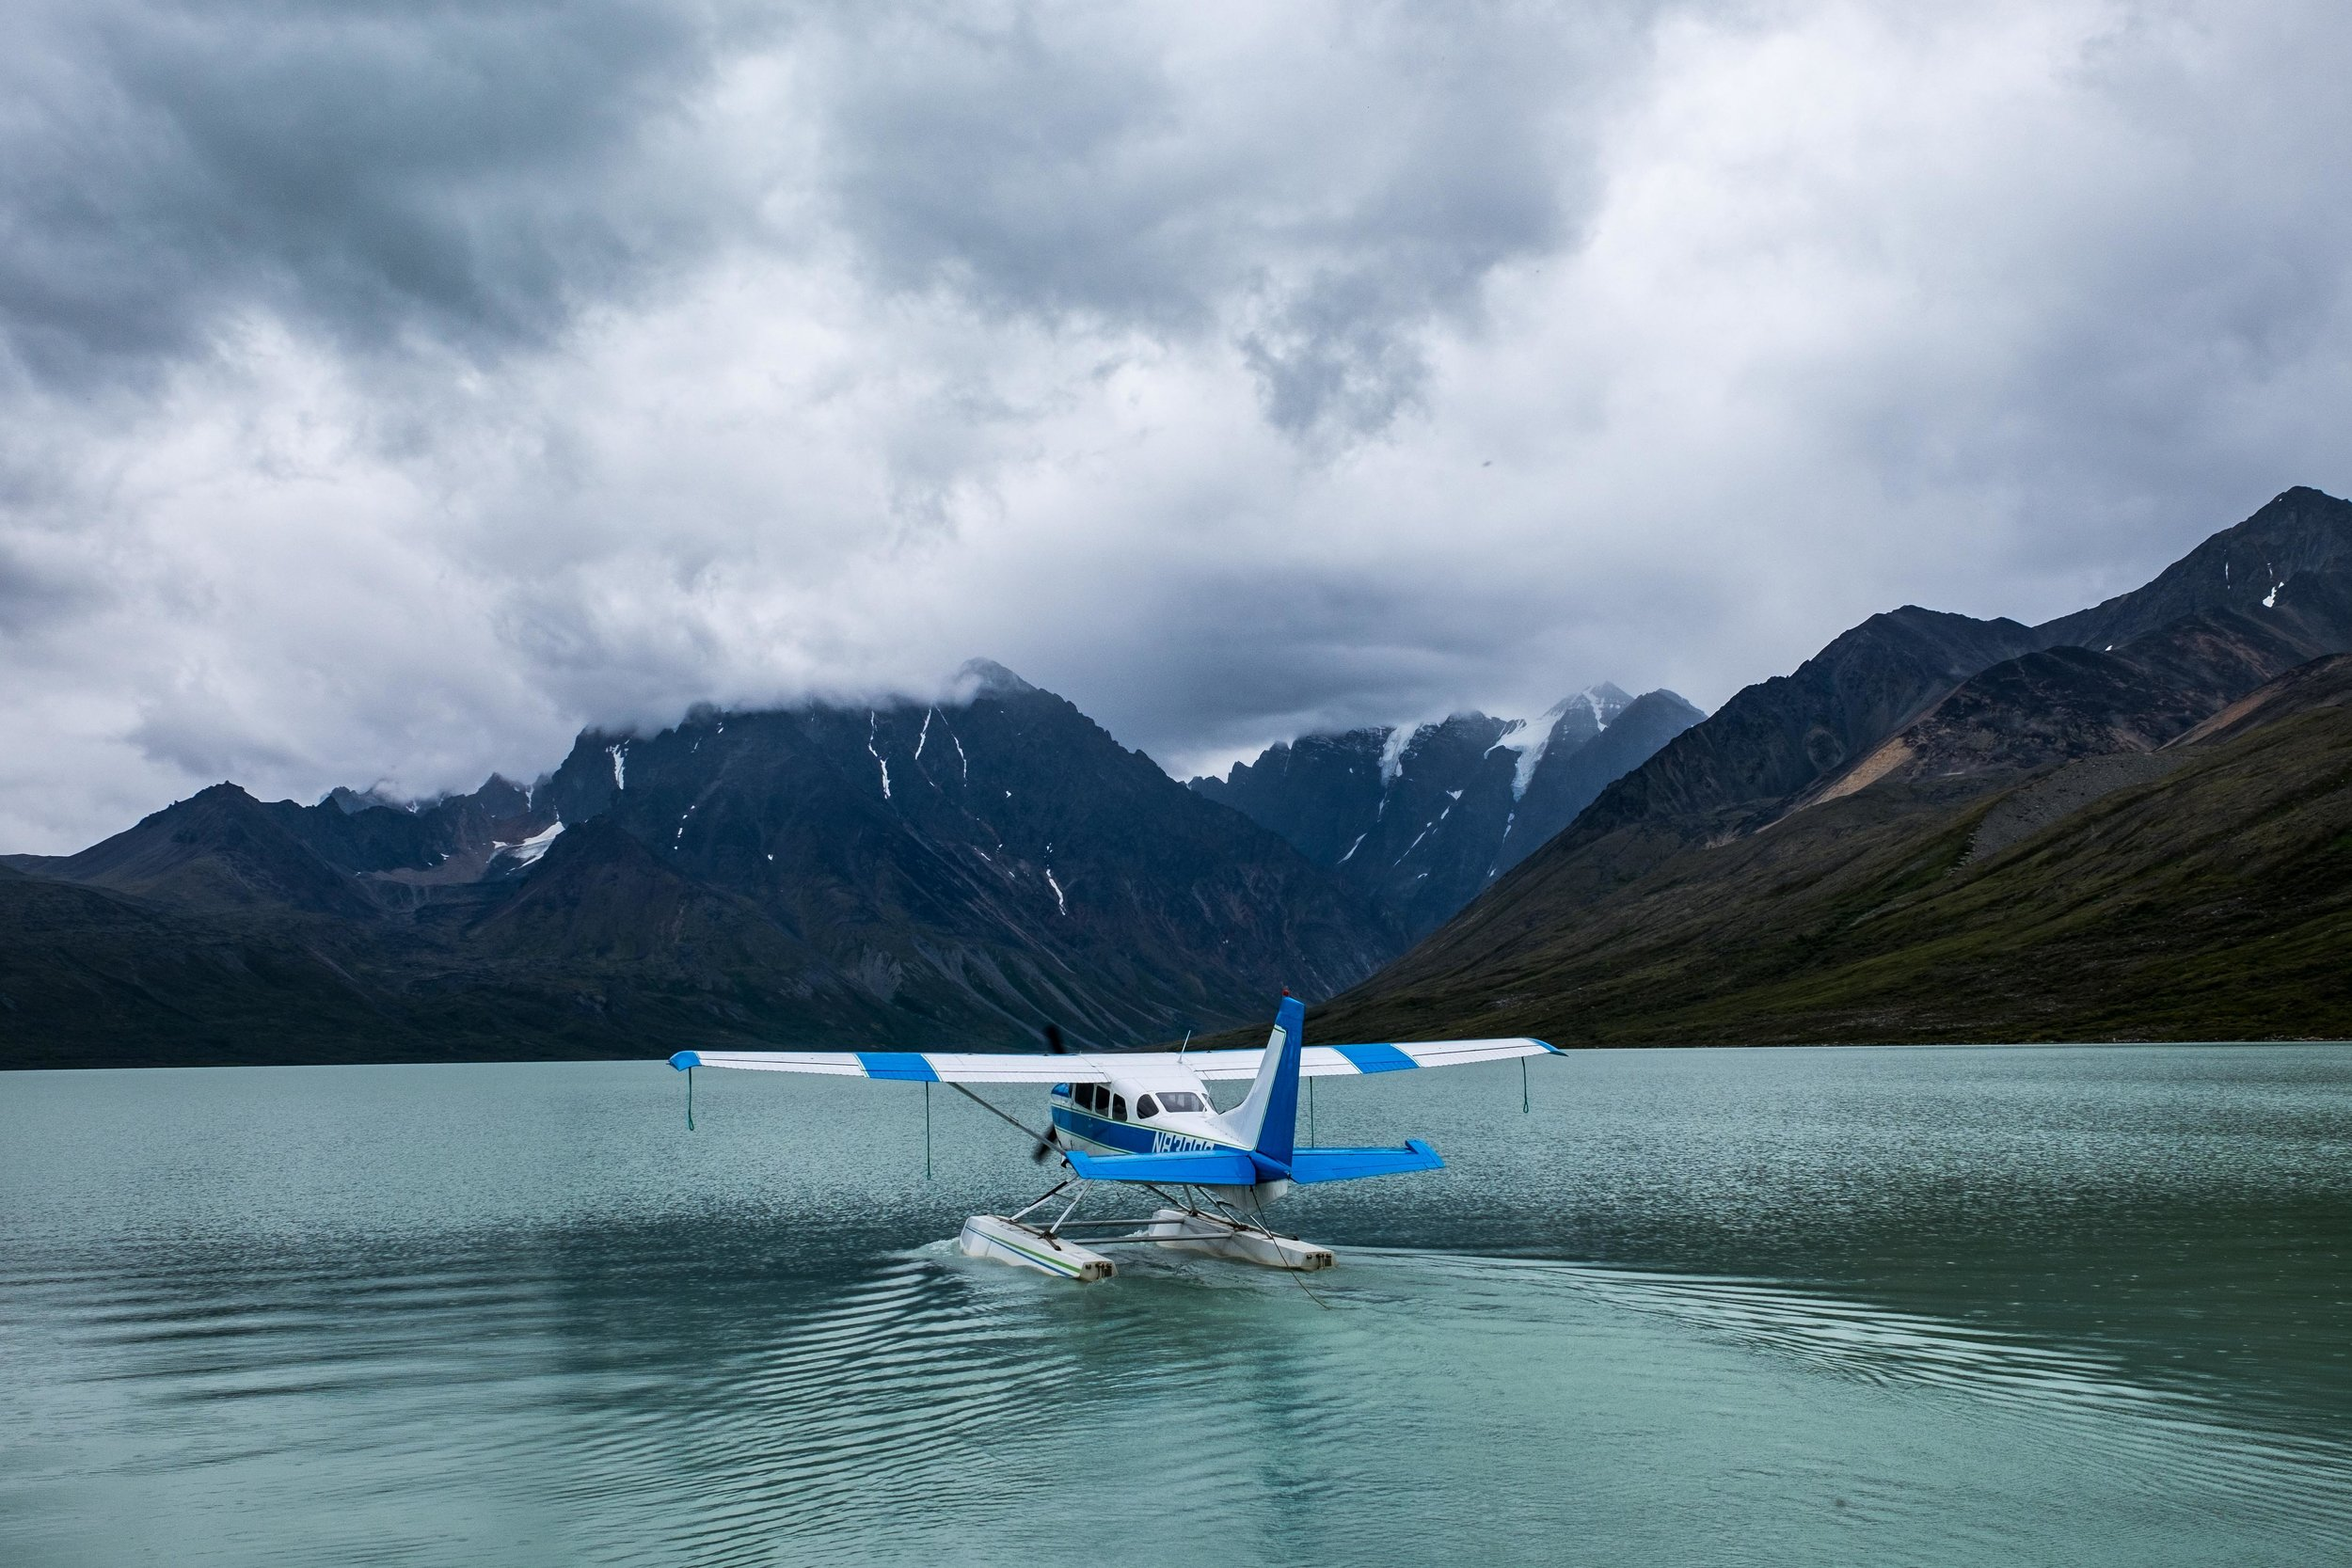 Finally, we landed at Turquoise Lake. I think I could get used to floatplane camping!